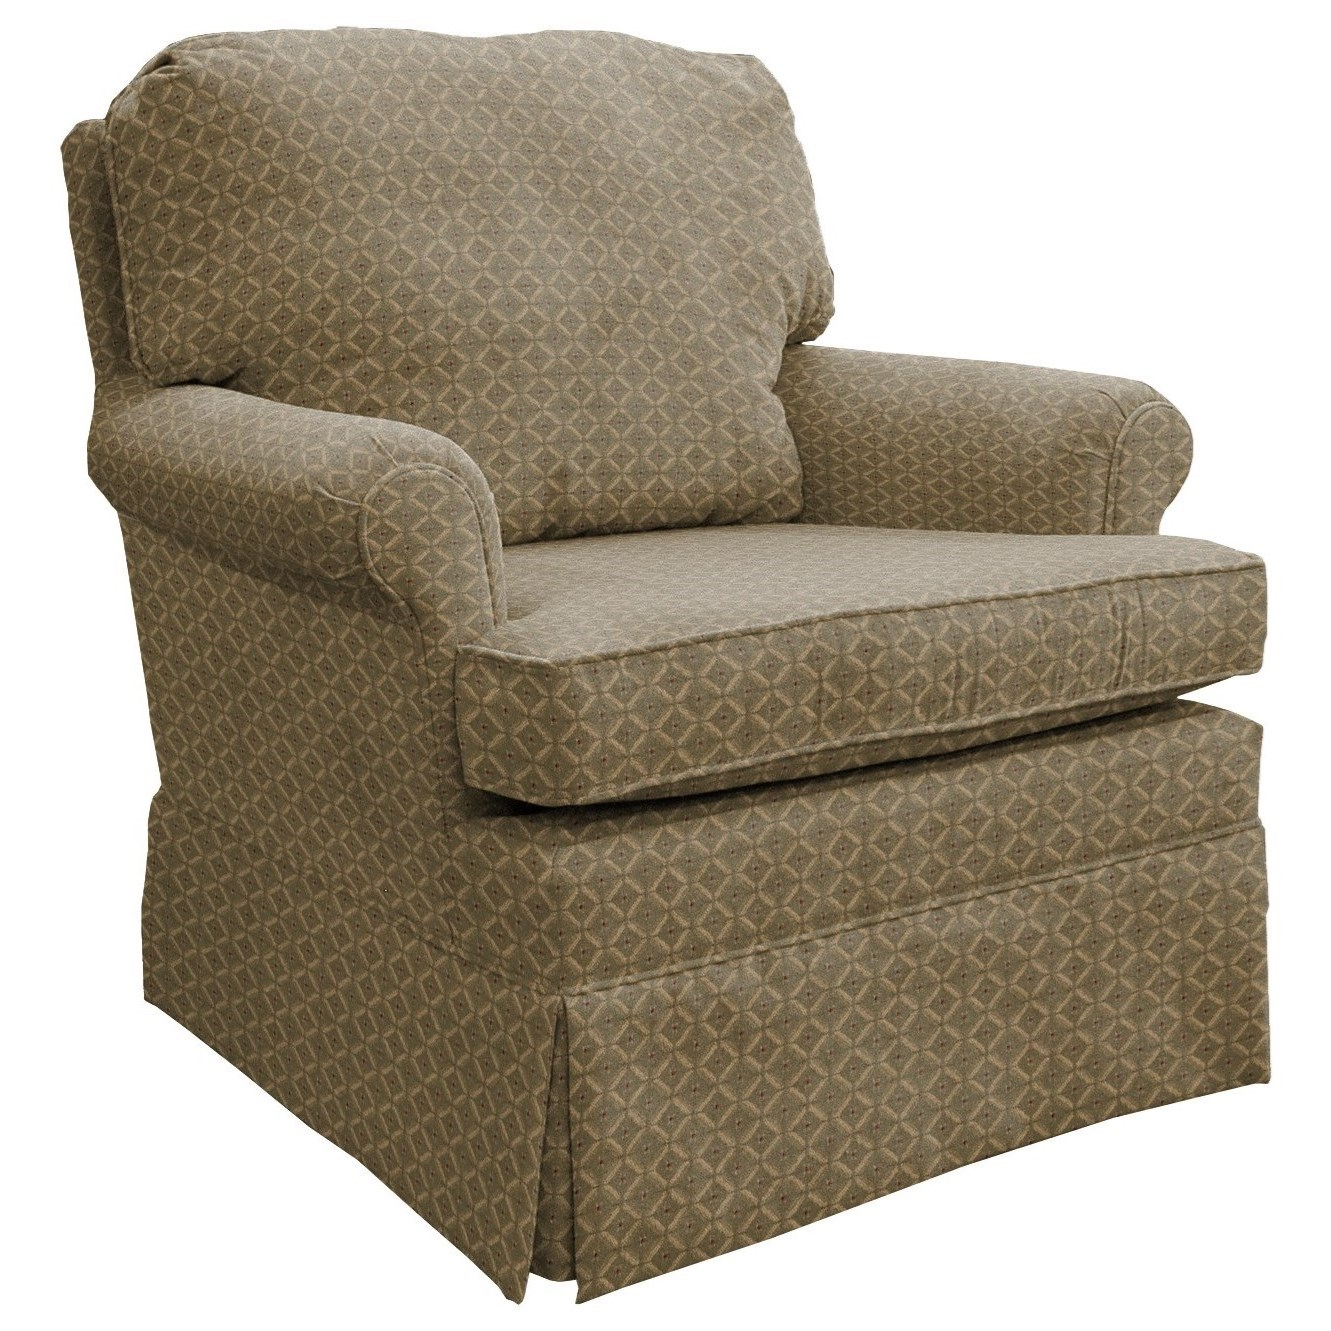 Best Home Furnishings Patoka Club Chair - Item Number: 2610-18021